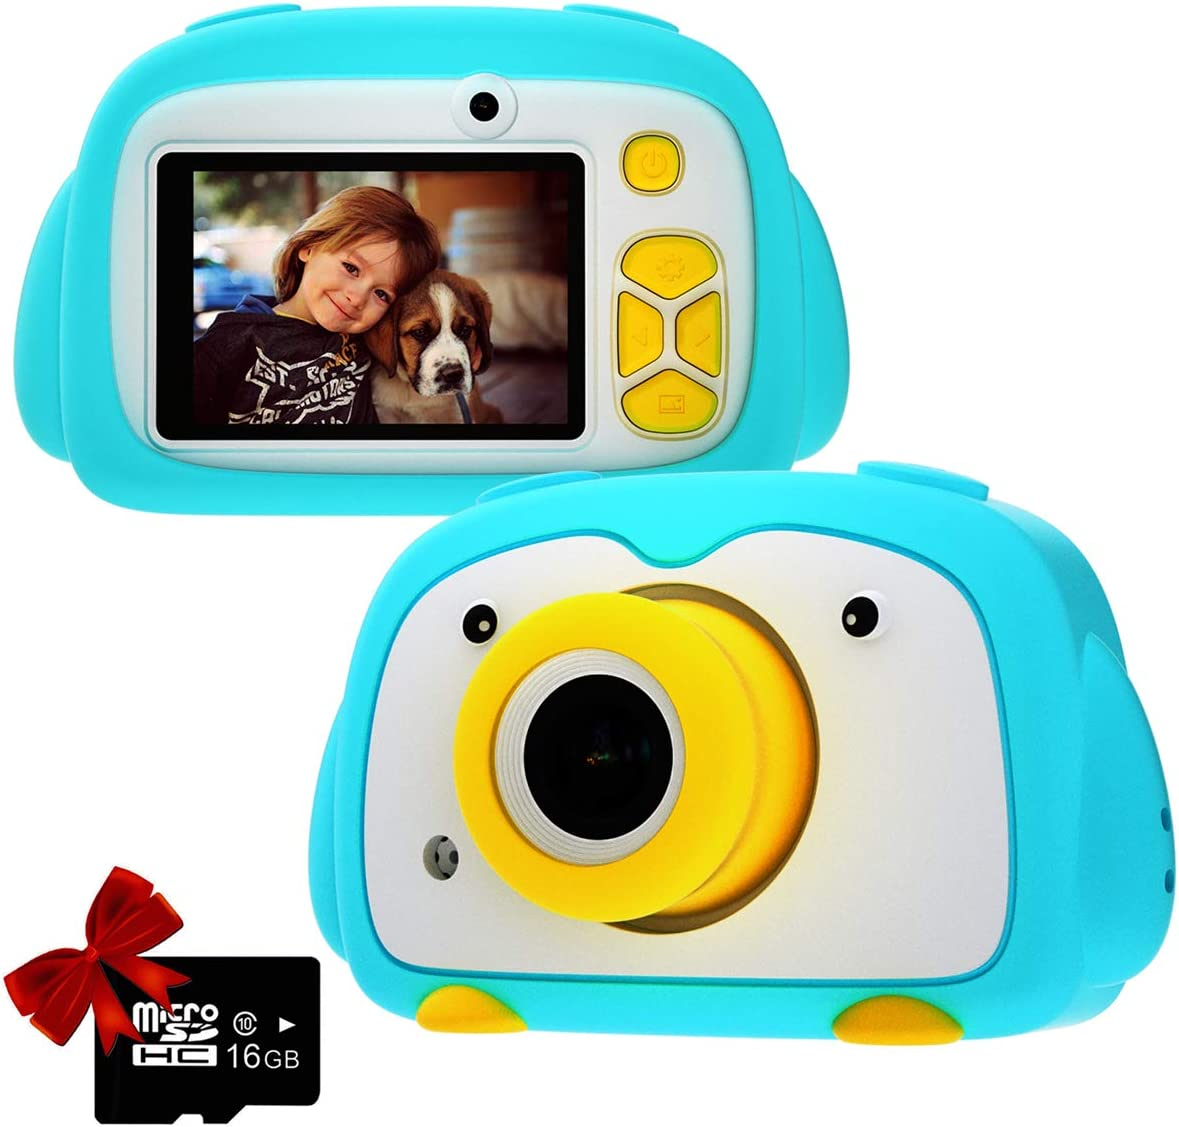 Kids Camera PANNOVO Digital Cam for Girls Rechargeable Video Recorder Cartoon Shockproof Silicone Case with 16GB SD Card 12MP HD 1080P 2 Inch Screen for 3-12 Year Old Boys Toddler - Blue